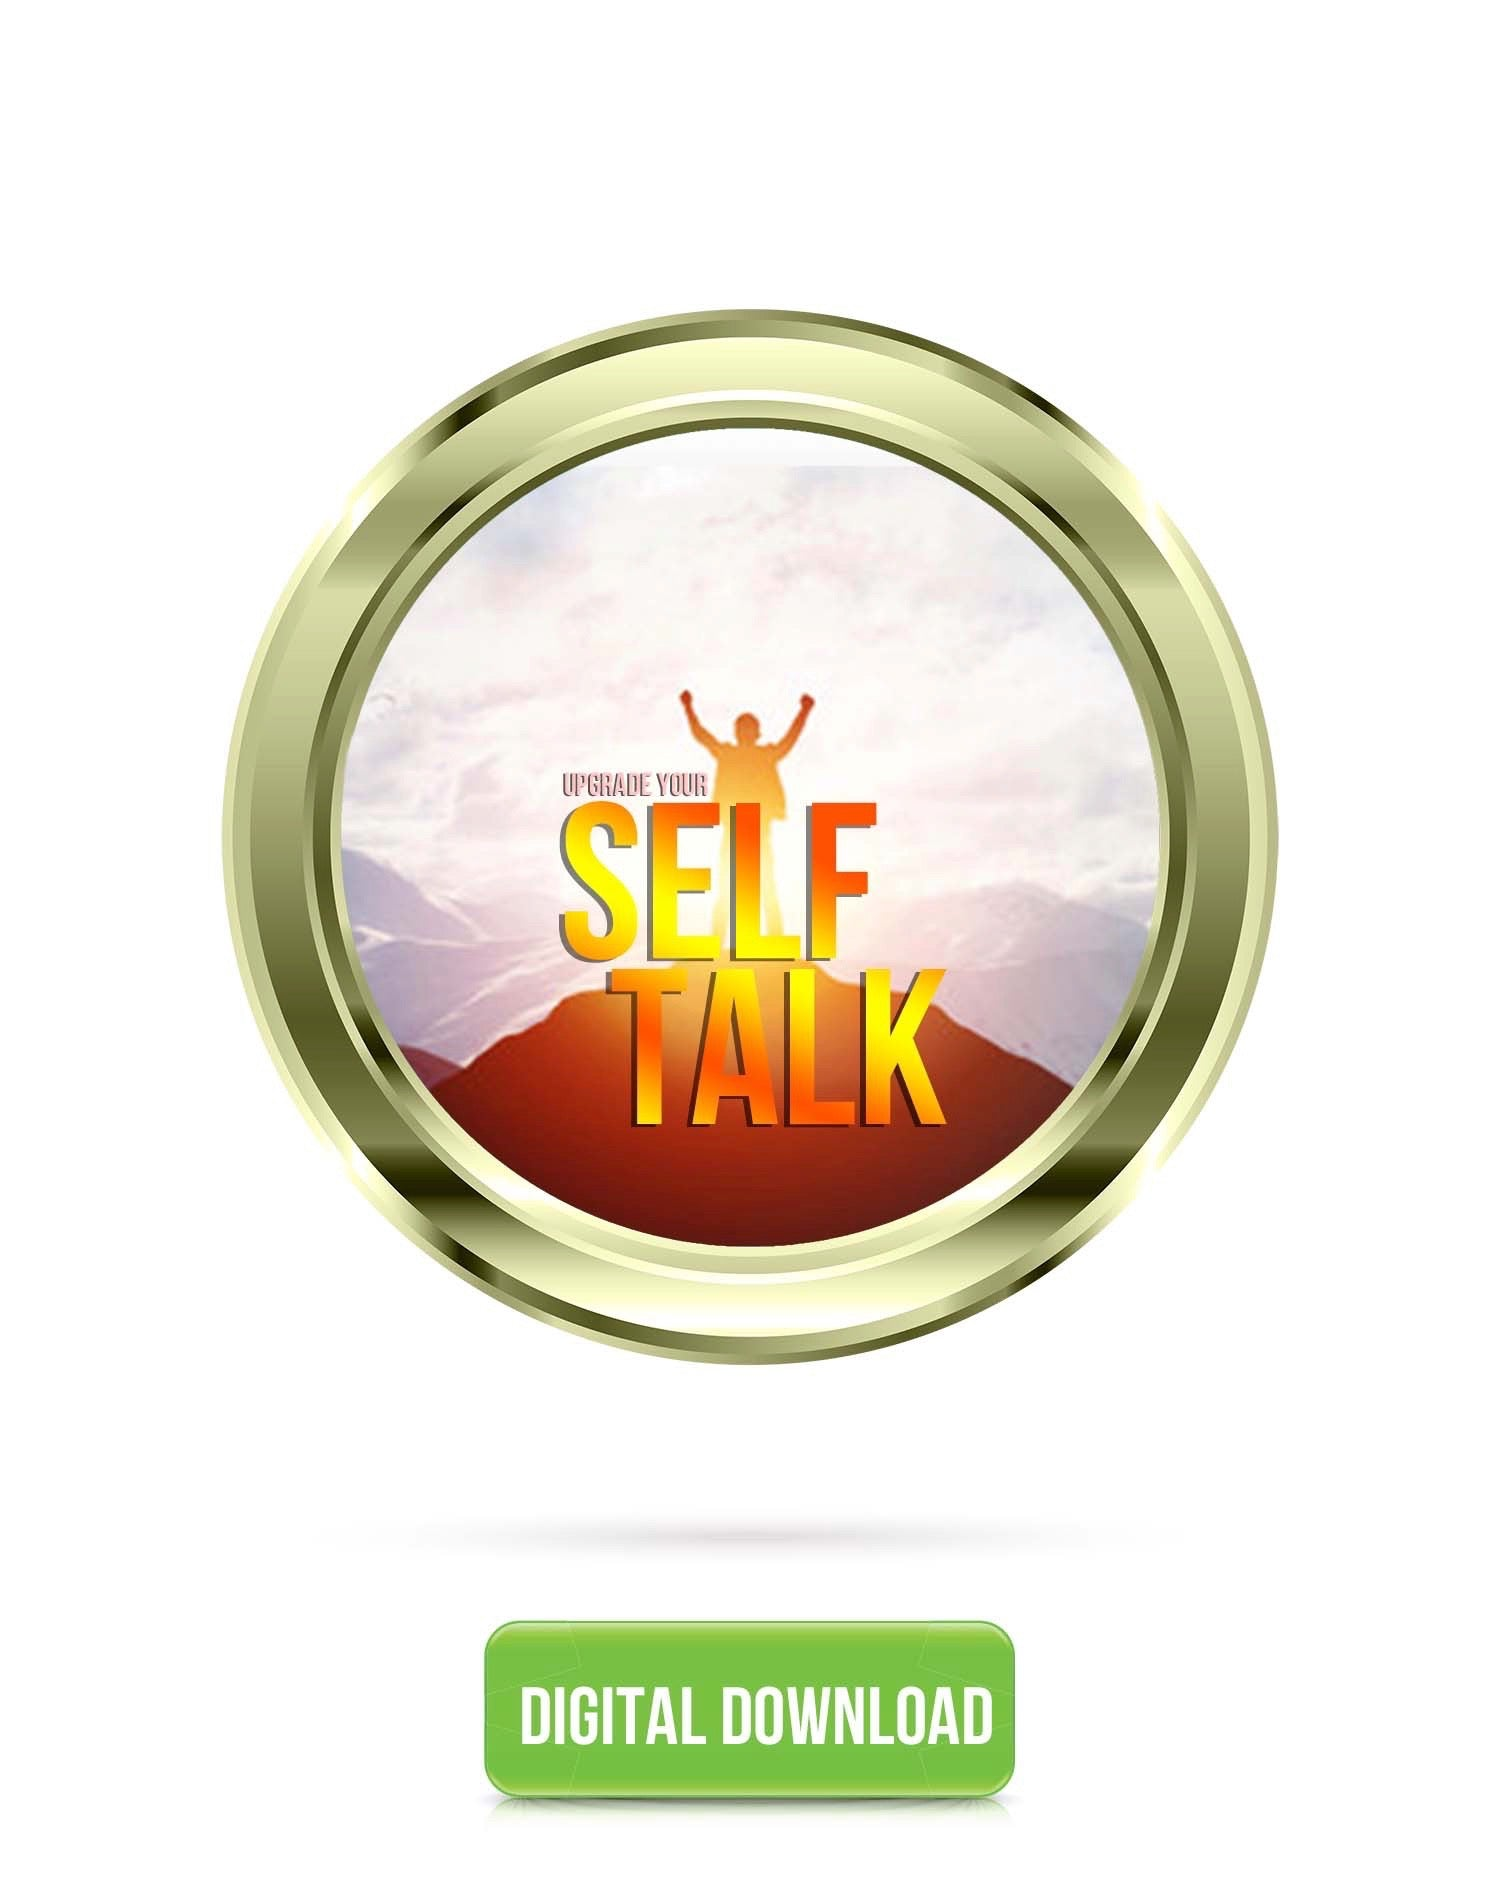 Upgrade Your Self Talk | Unlimited Motivation PowerHypnosis (HYPNOSIS Track)